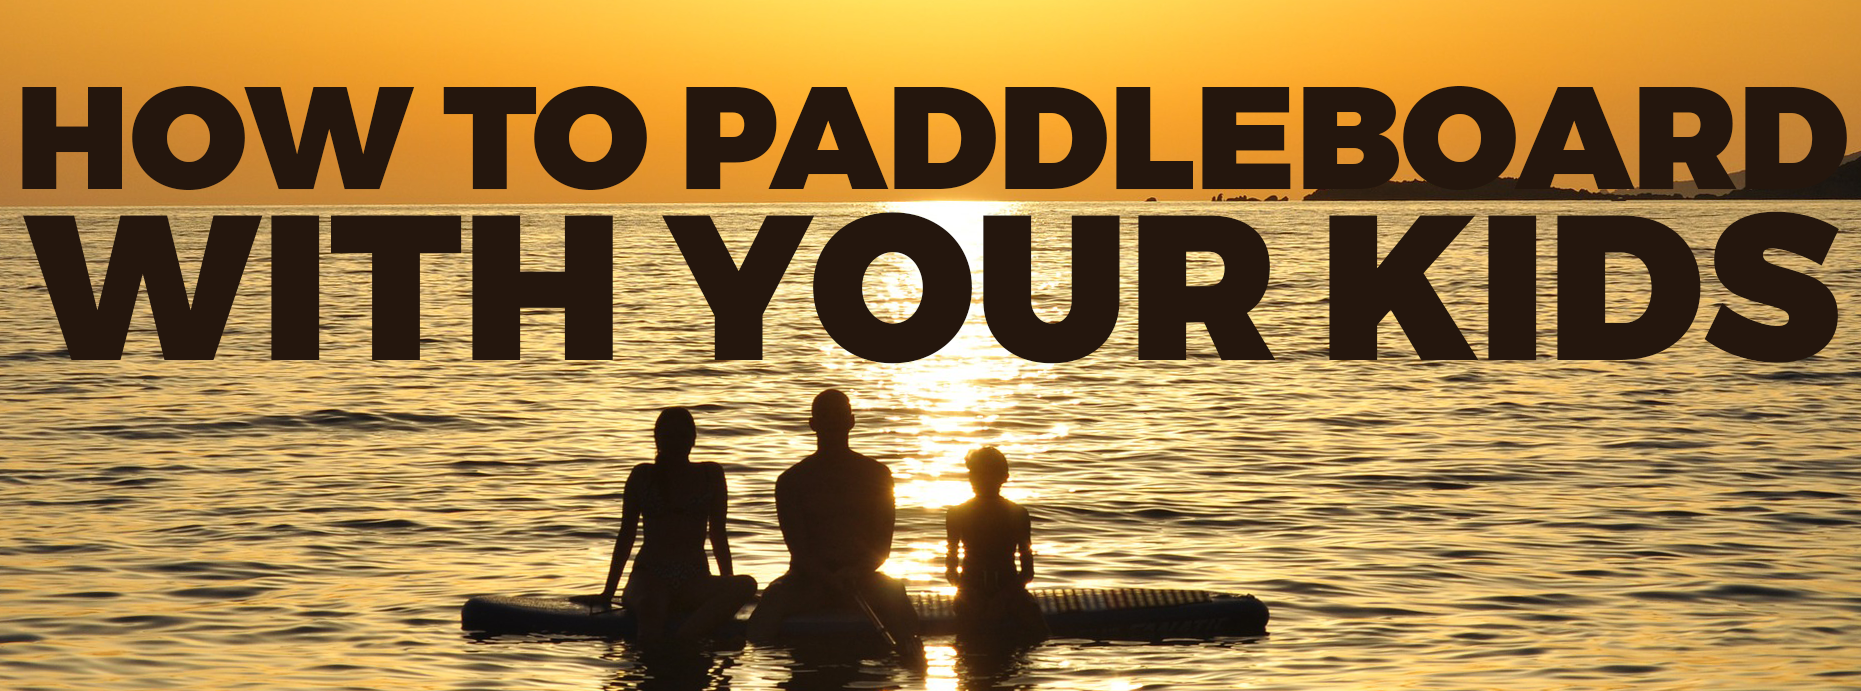 How to Paddleboard with Your Kids